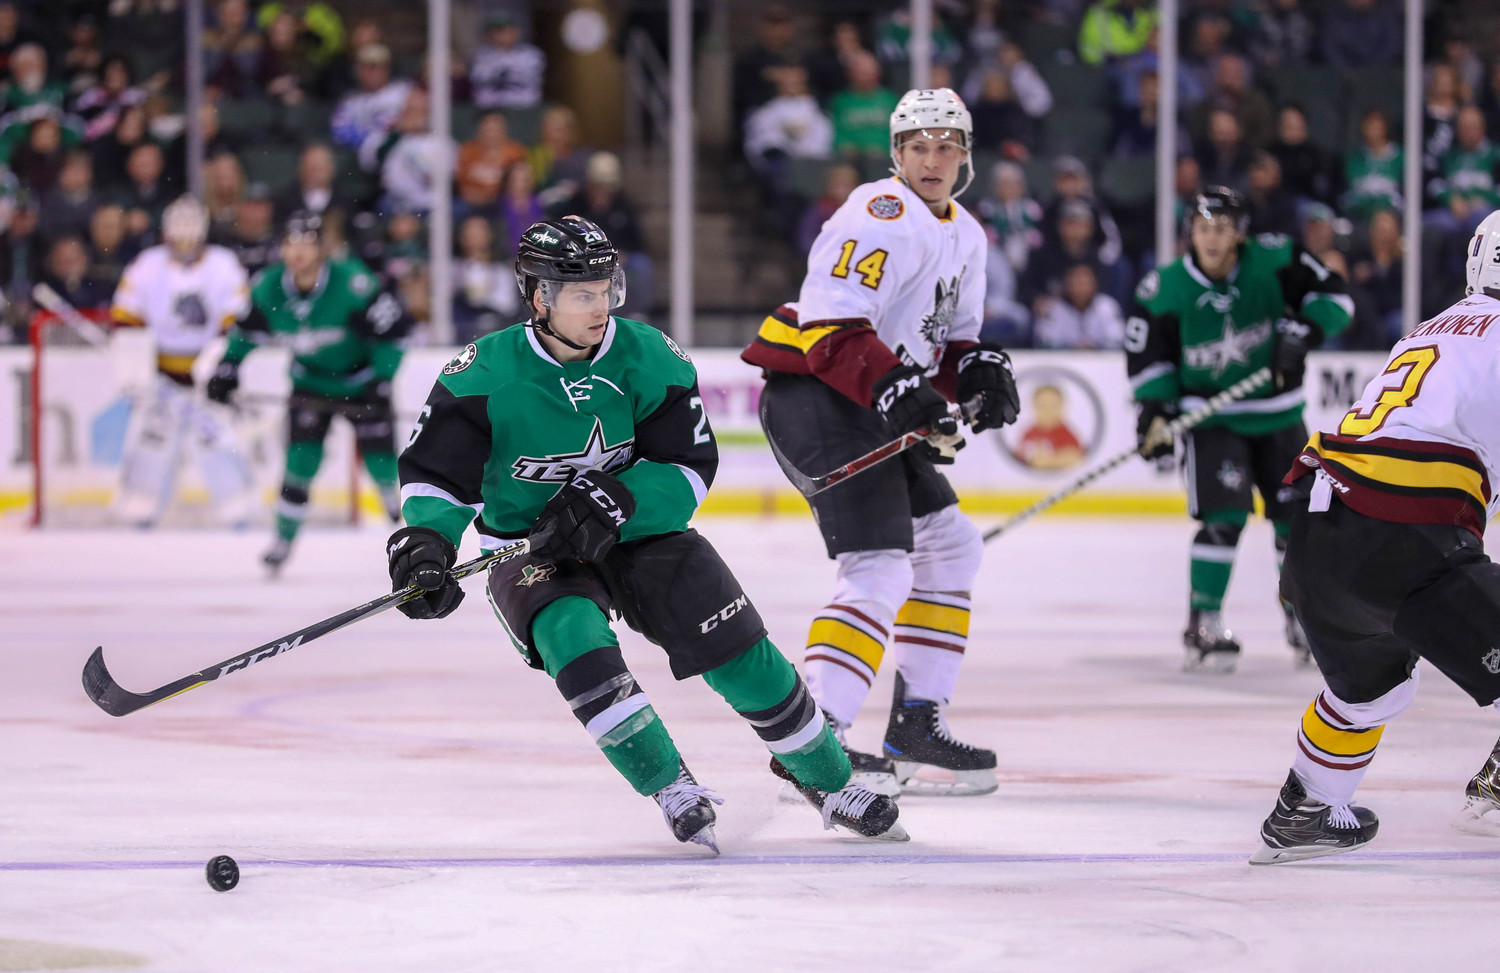 Max French scored his fourth goal of the season, but the Stars lost to the Chicago Wolves 4-1 on Saturday night.